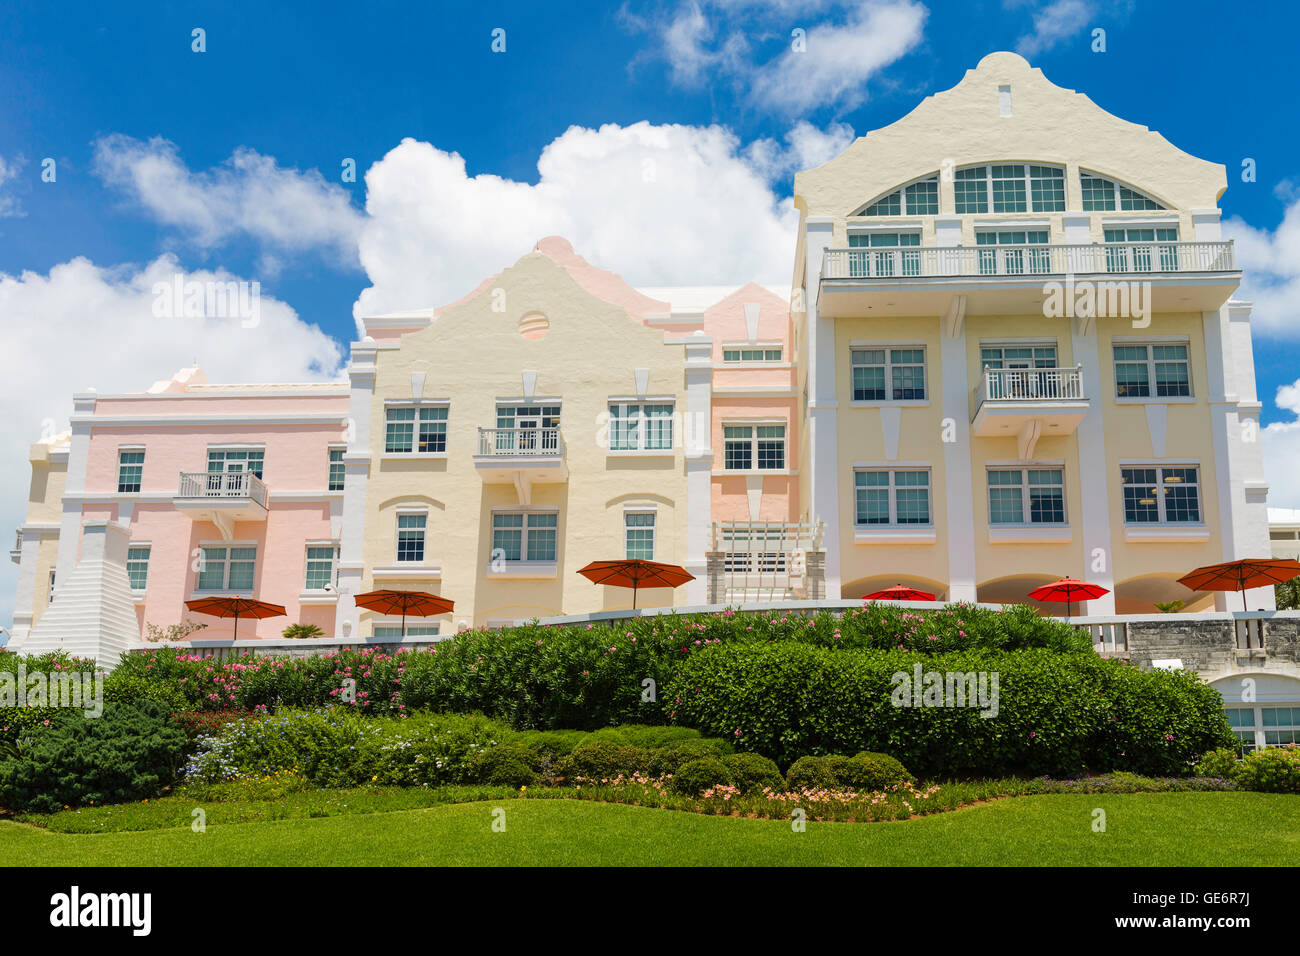 Modern architecture of the ACE Insurance Building in Hamilton, Bermuda. - Stock Image